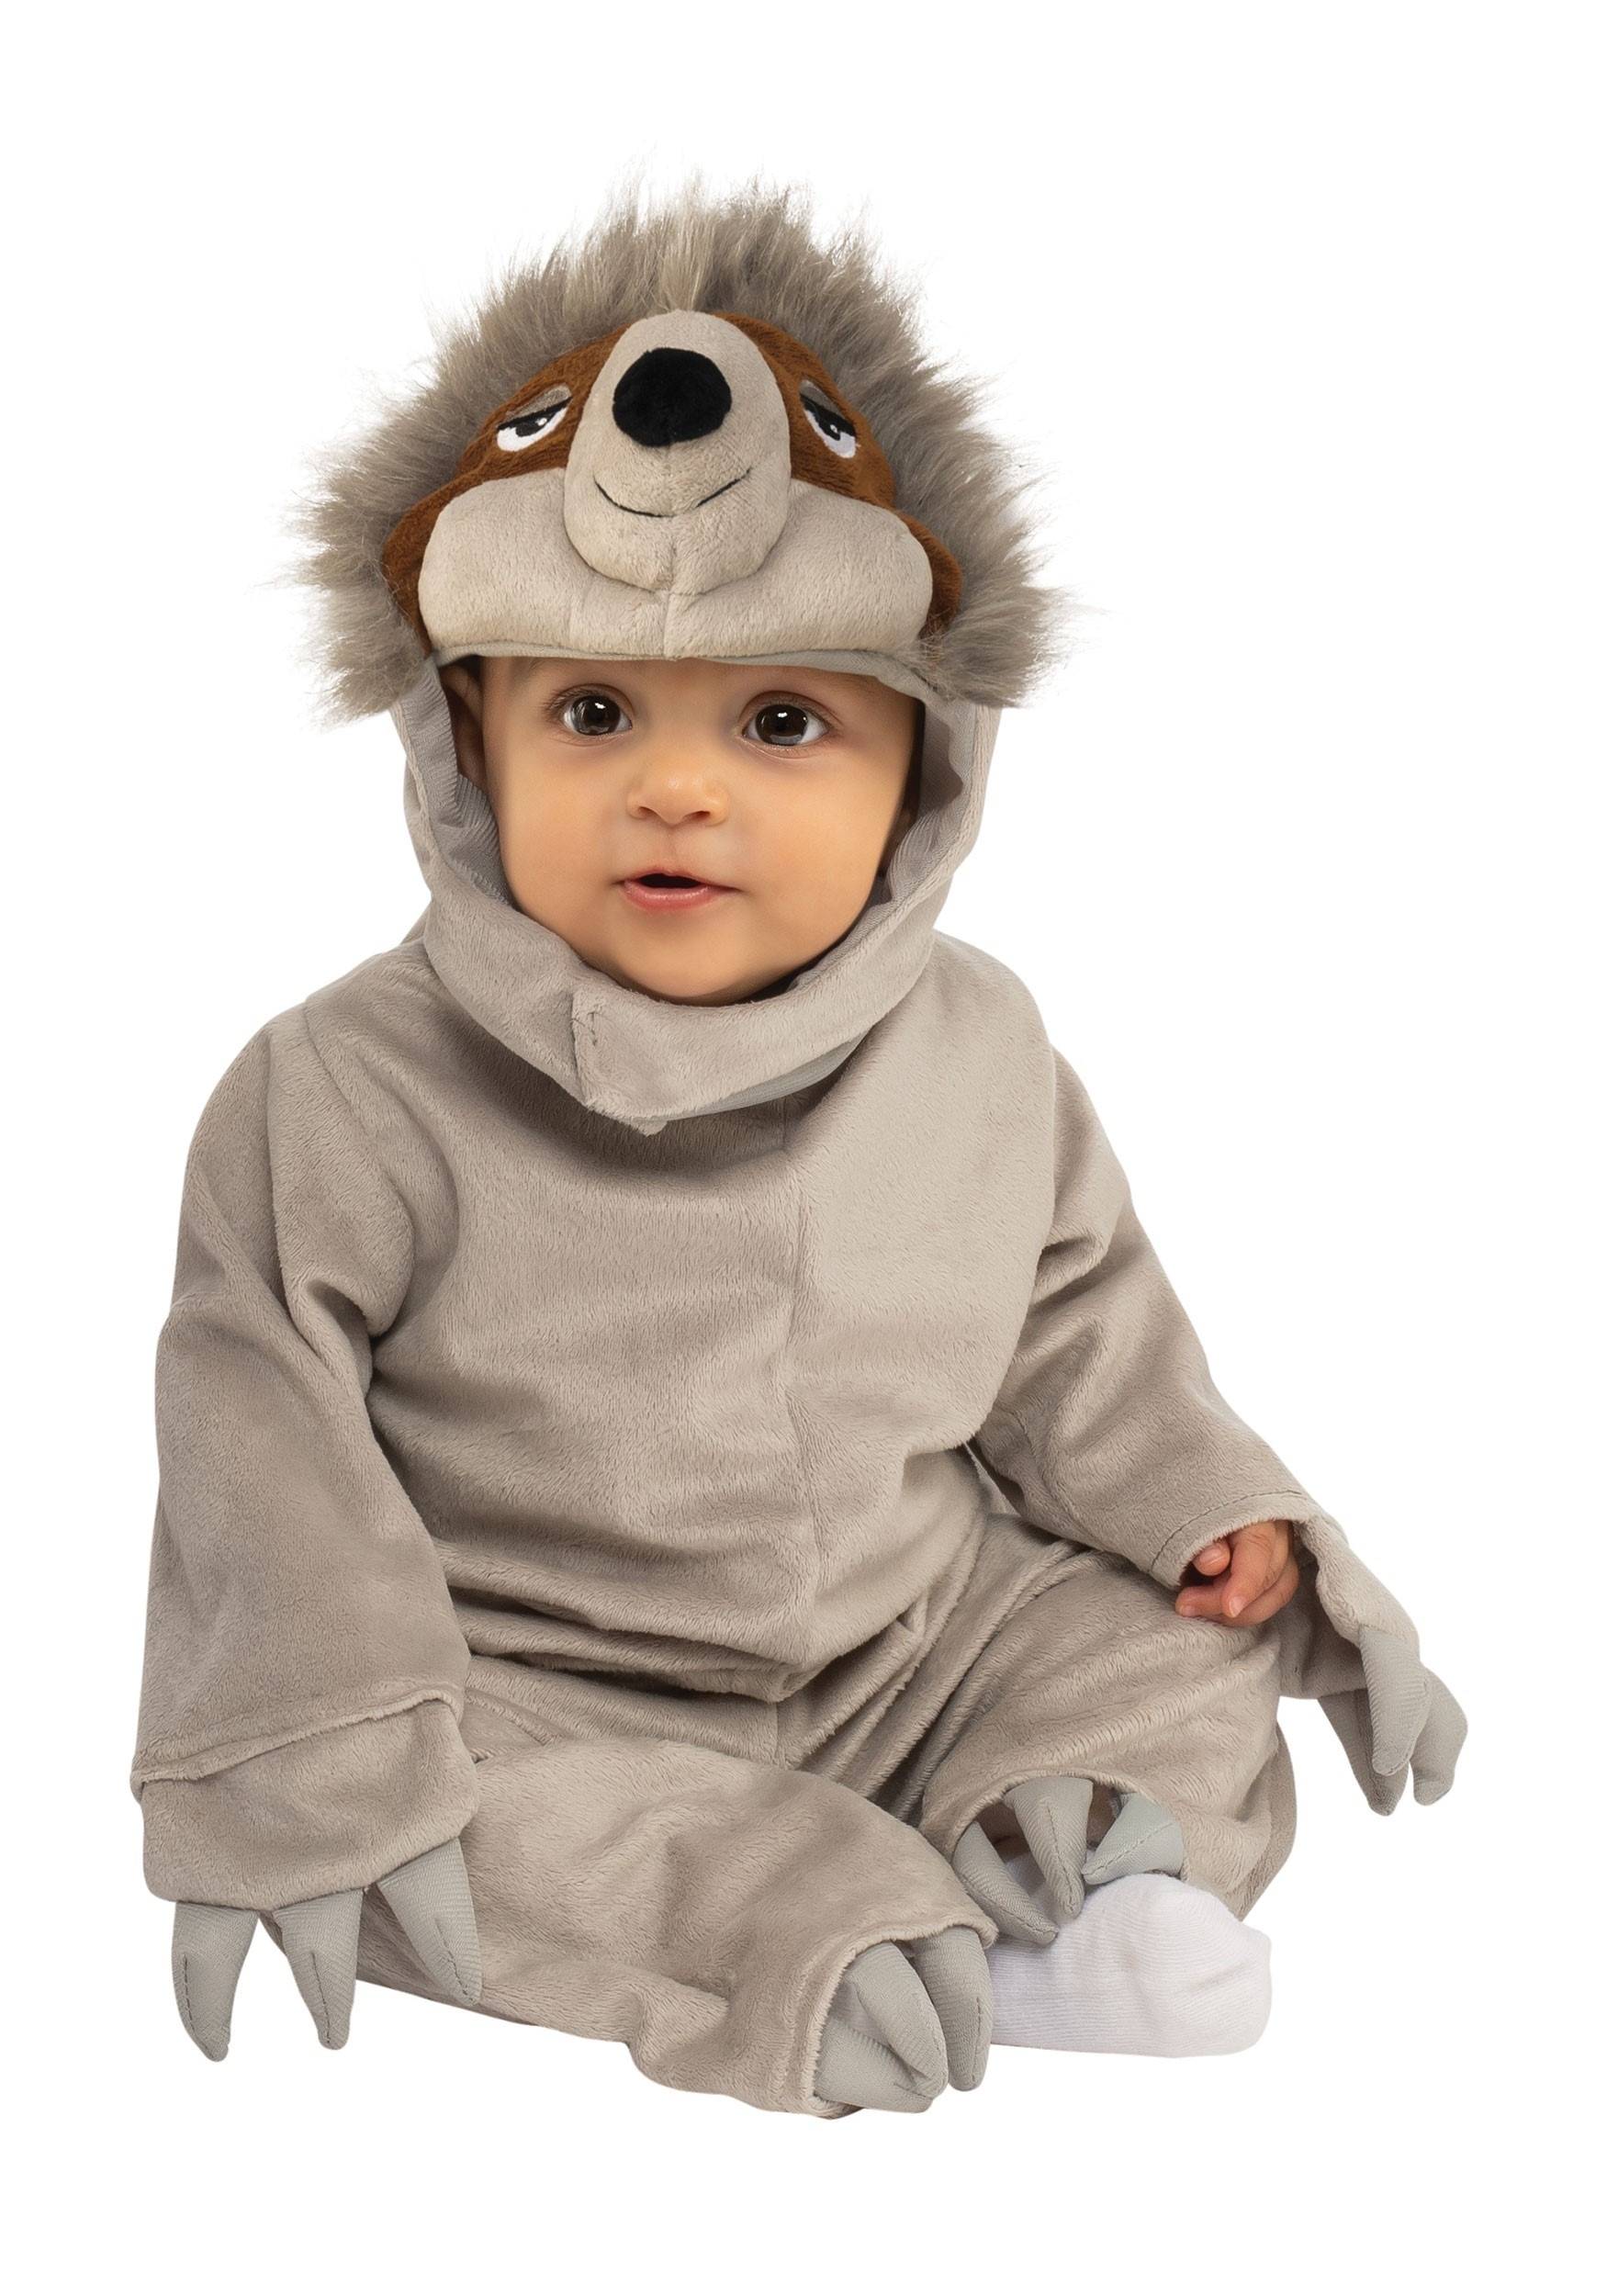 5c072729d1e74 Li'l Cuties Toddler's Sloth Costume